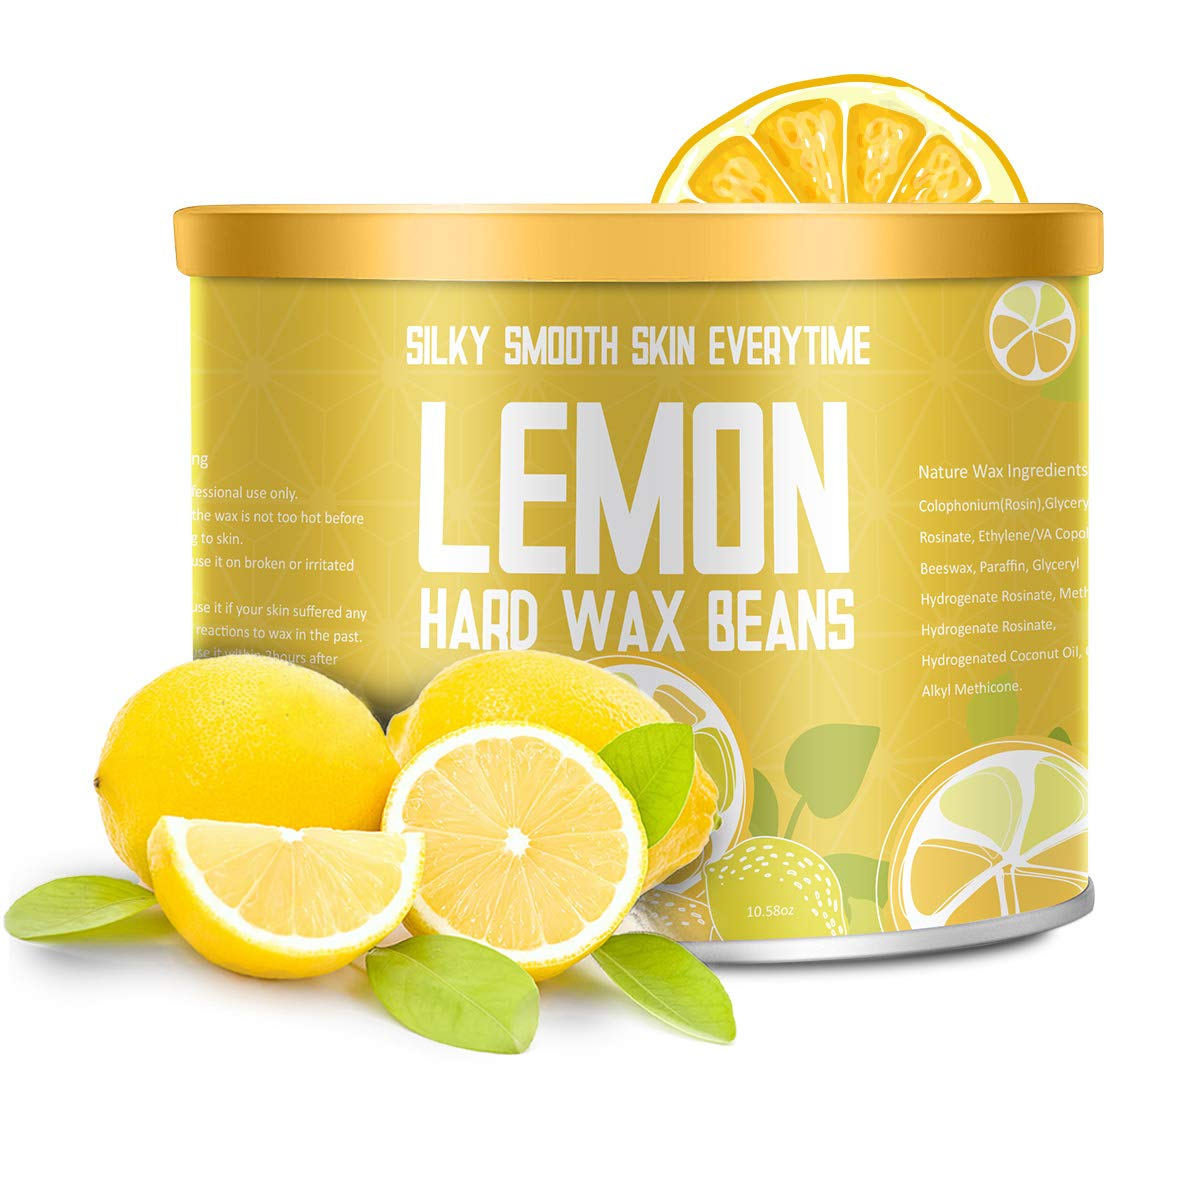 【Lemon Essential Oil】Yeelen Essential Oil Hard Wax Beans Hair Removal Wax Beads with 10 Applicator Sticks for Facial Body Brazilian Bikini At Home Waxing, 10.58oz/300g